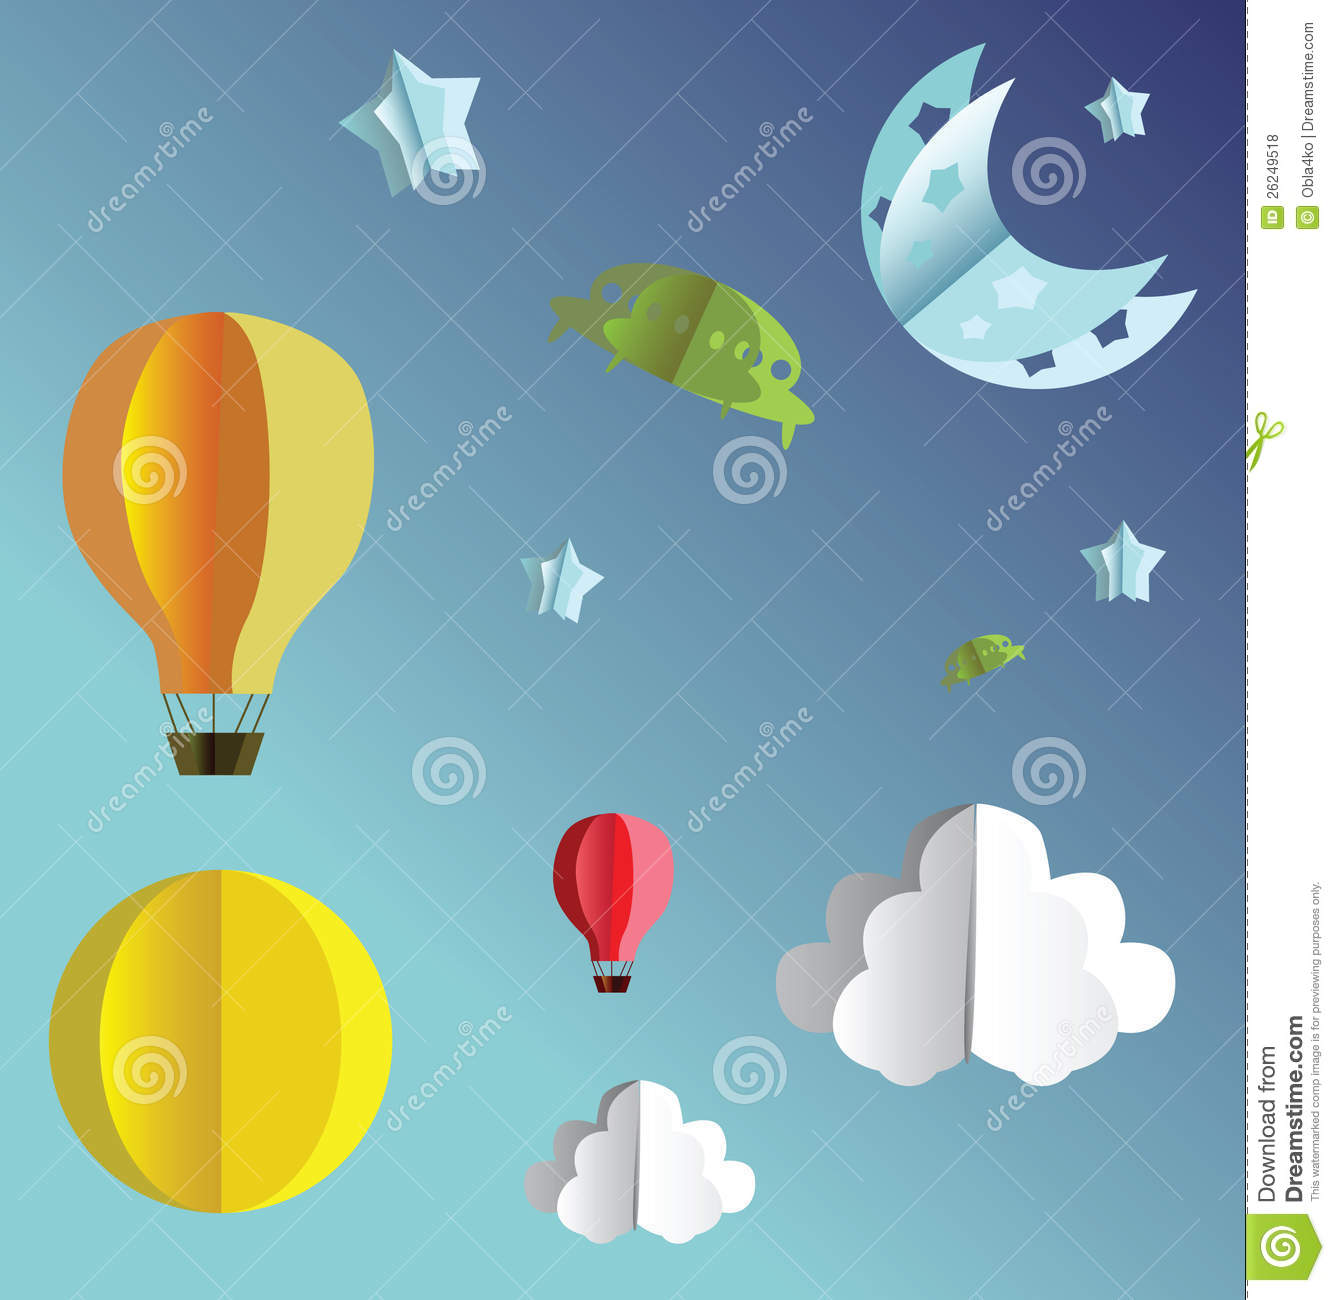 3d Paper Flying Objects Royalty Free Stock Photos - Image ... - photo#25